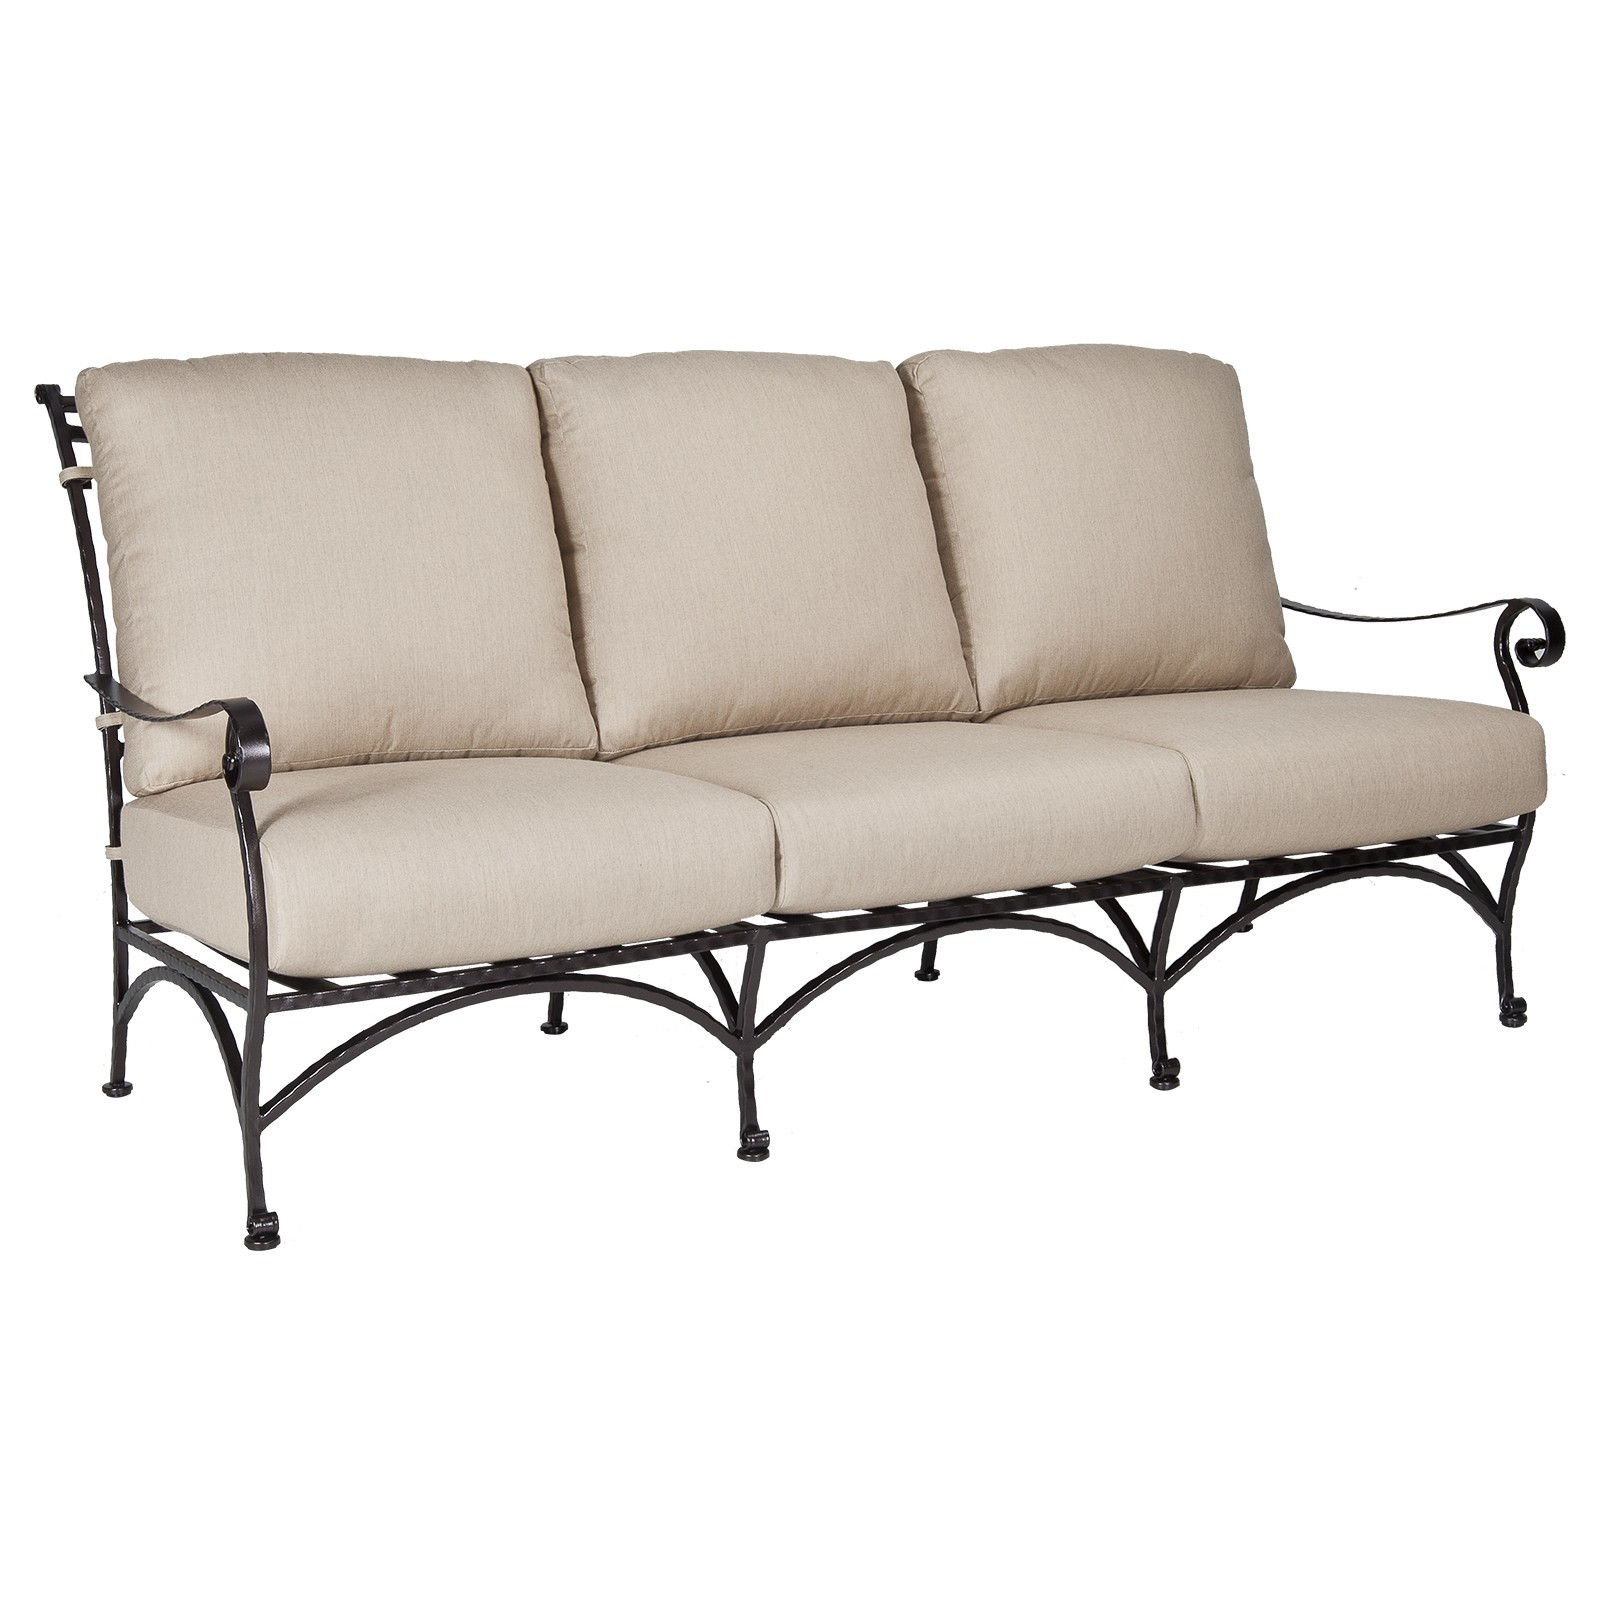 What Is Sofa In Spanish San Cristobal Sofa